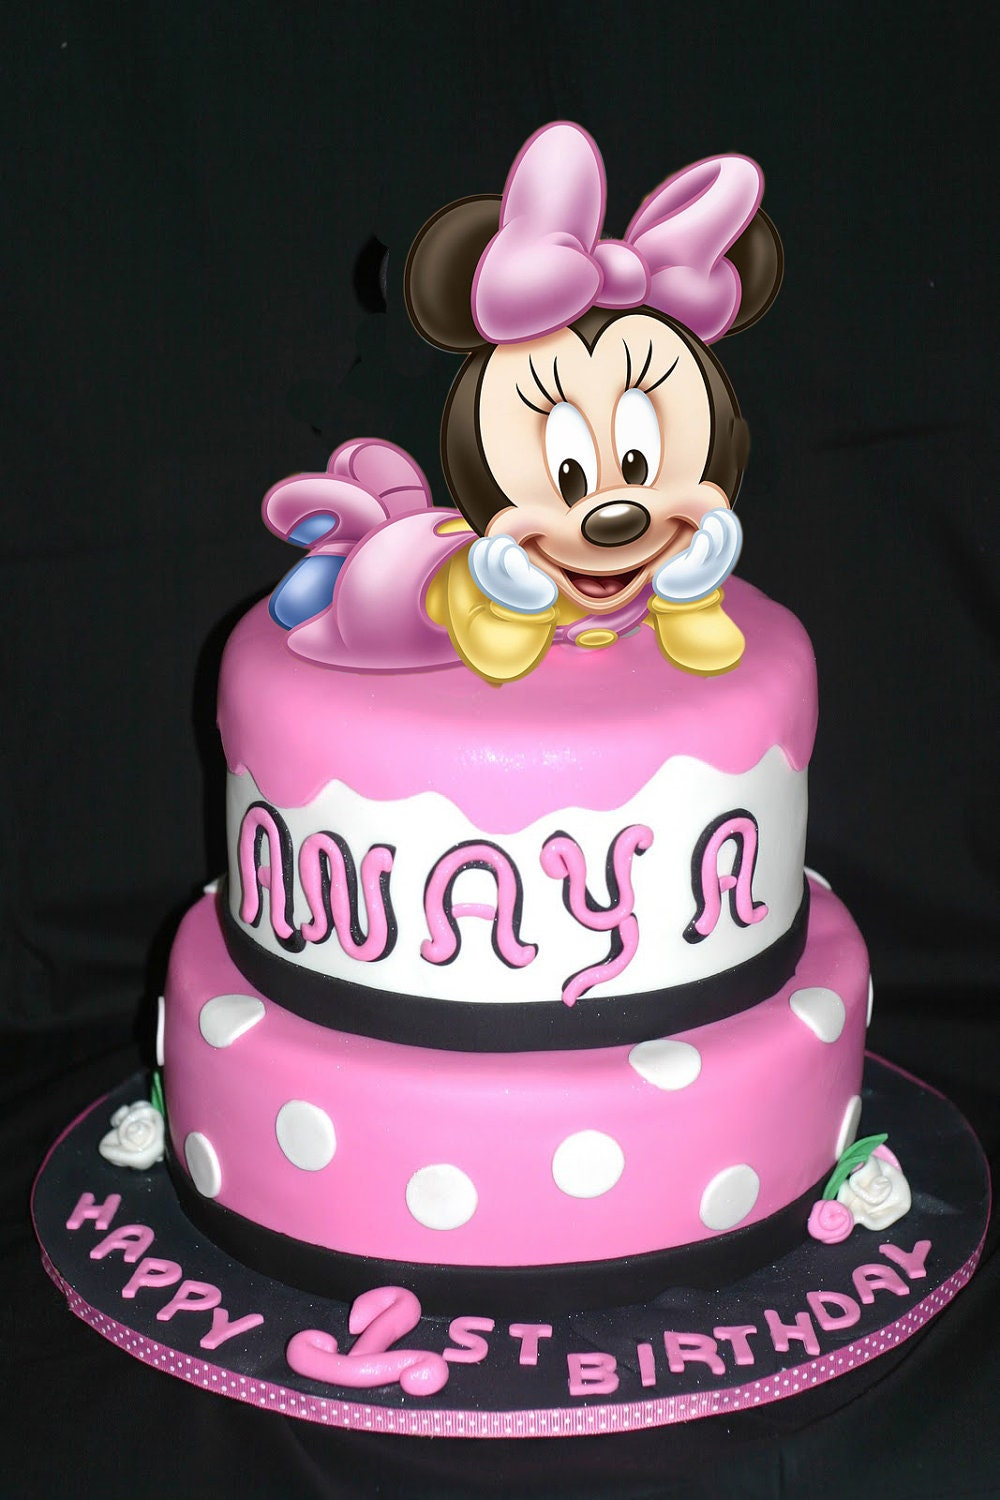 Baby Minnie Mouse Cake Toppers Cake Baby Minnie Mouse Cake